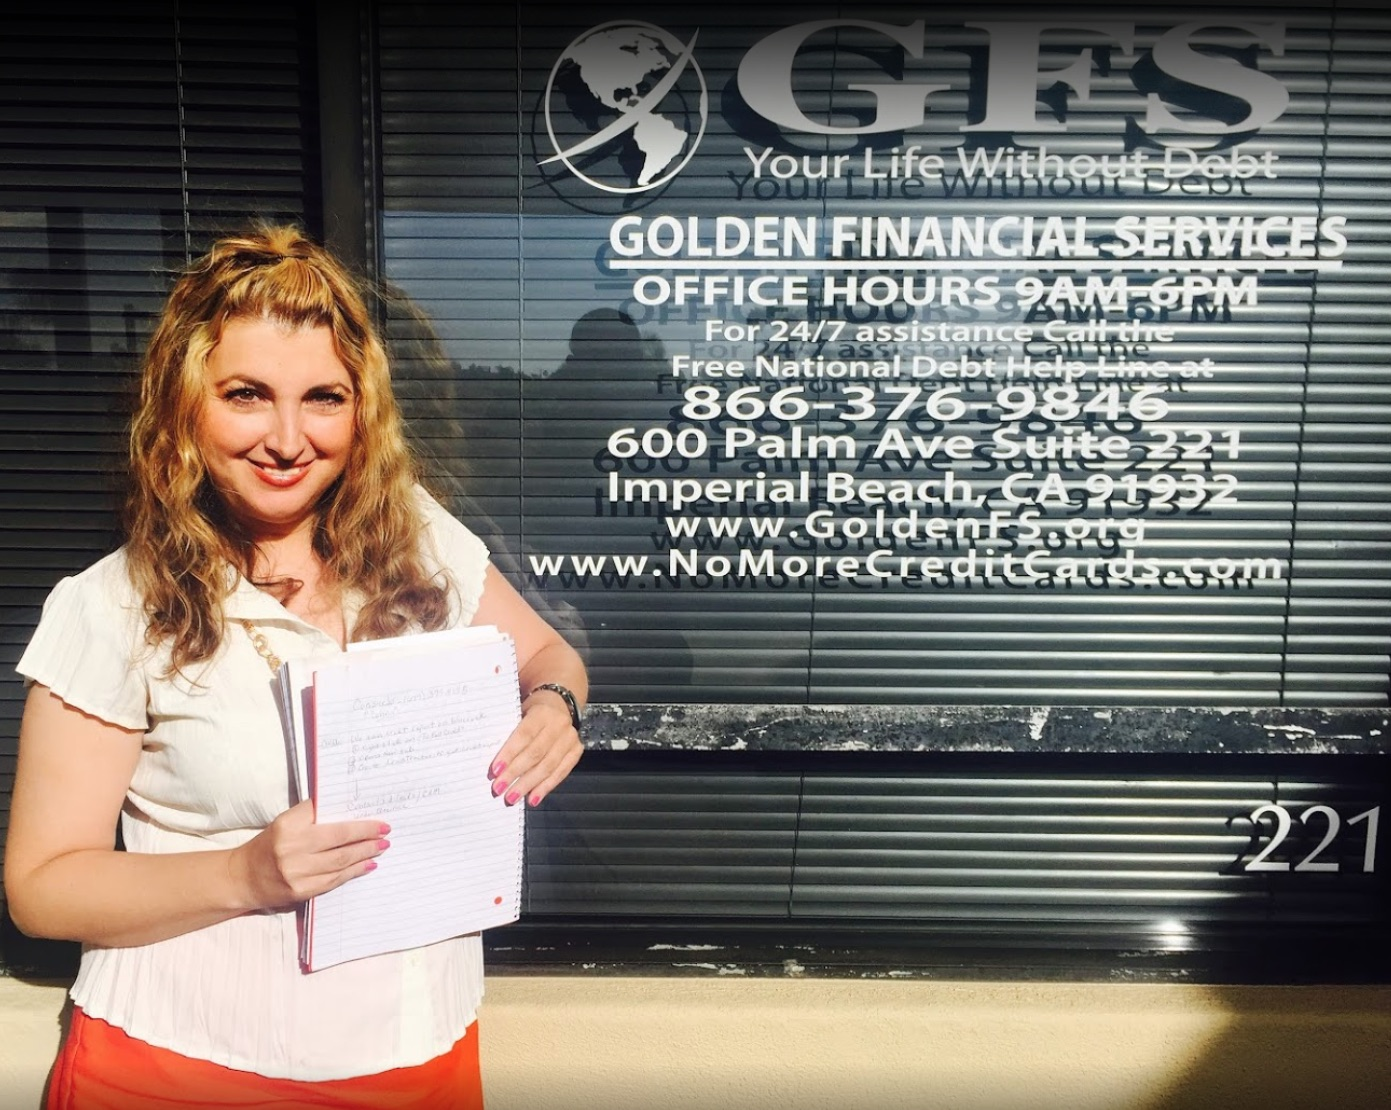 Imperial Beach Ca Debt Relief Program At Golden Financial Services